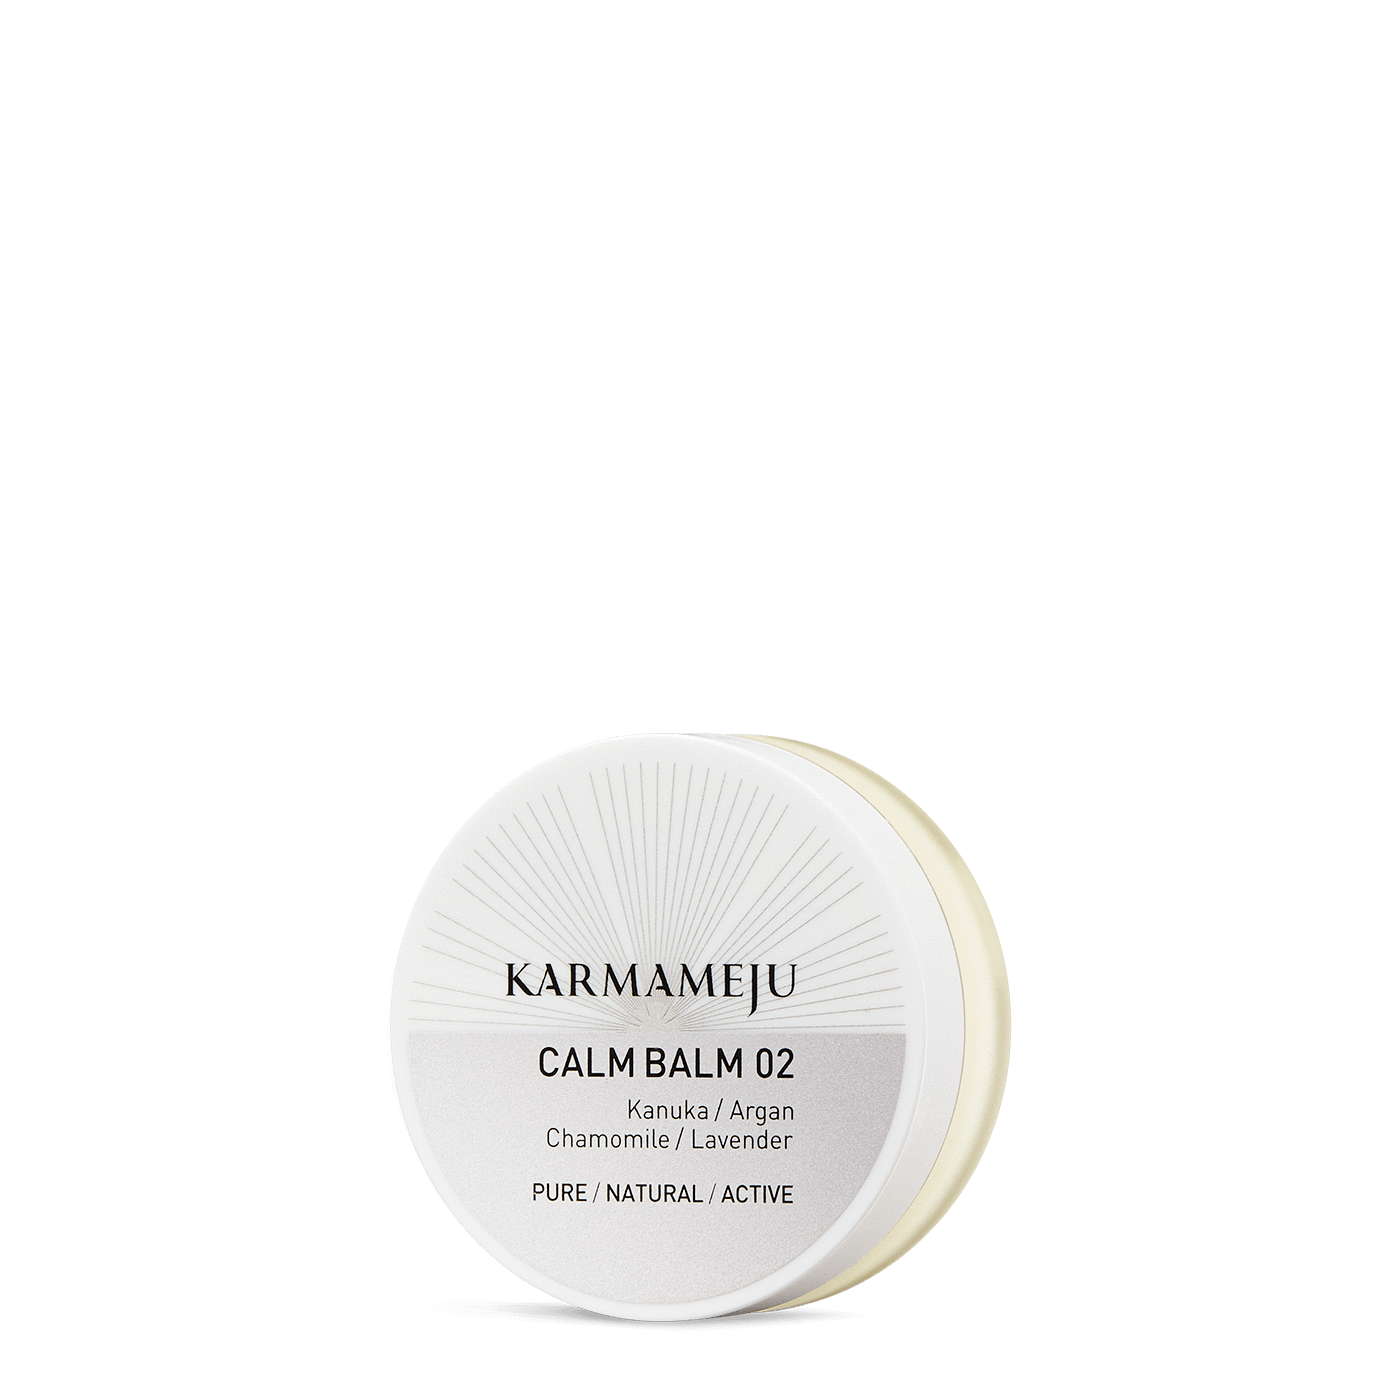 Karmameju CALM / BALM 02 - Travel size